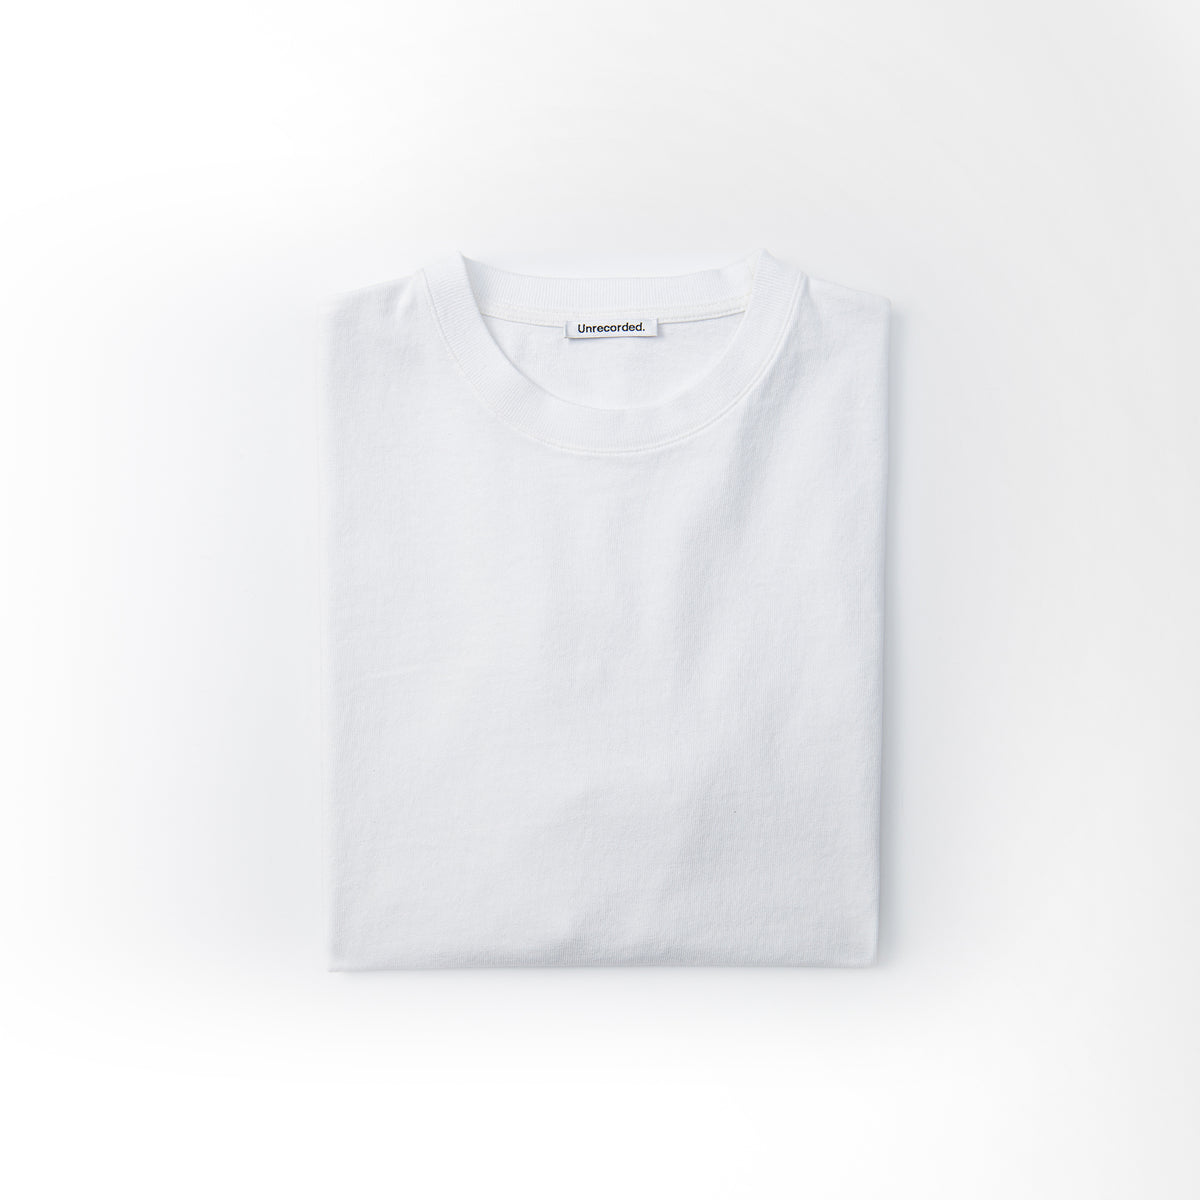 T-Shirt 220 GSM in White made from organic cotton - Alternate